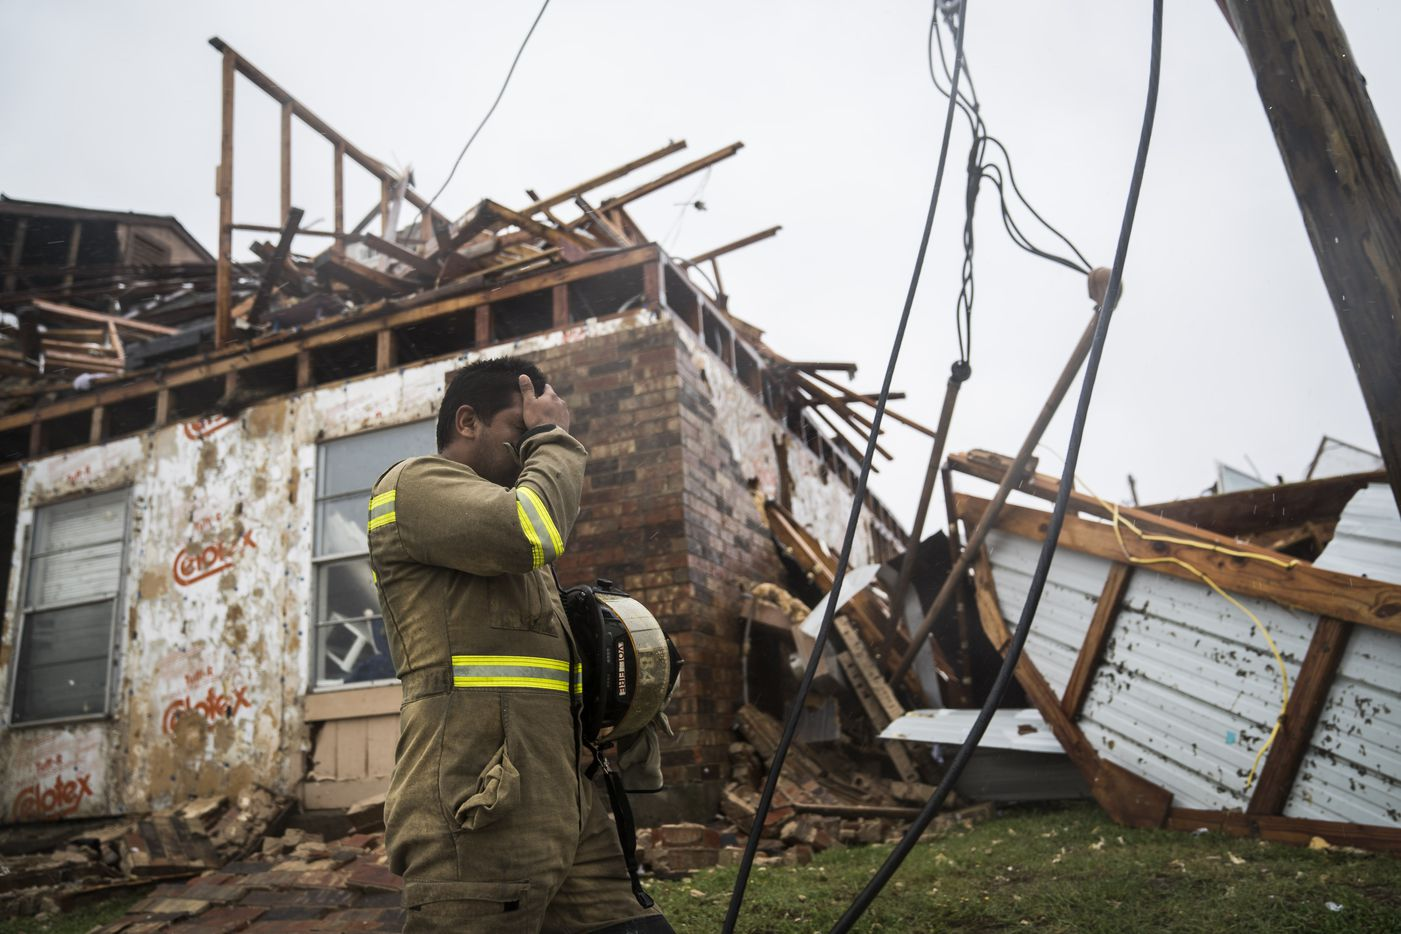 A firefighter wipes his face as he searches for survivors at an apartment complex in Rockport, Texas, as Hurricane Harvey hits the state's coast on Saturday. Must credit: Washington Post photo by Jabin Botsford